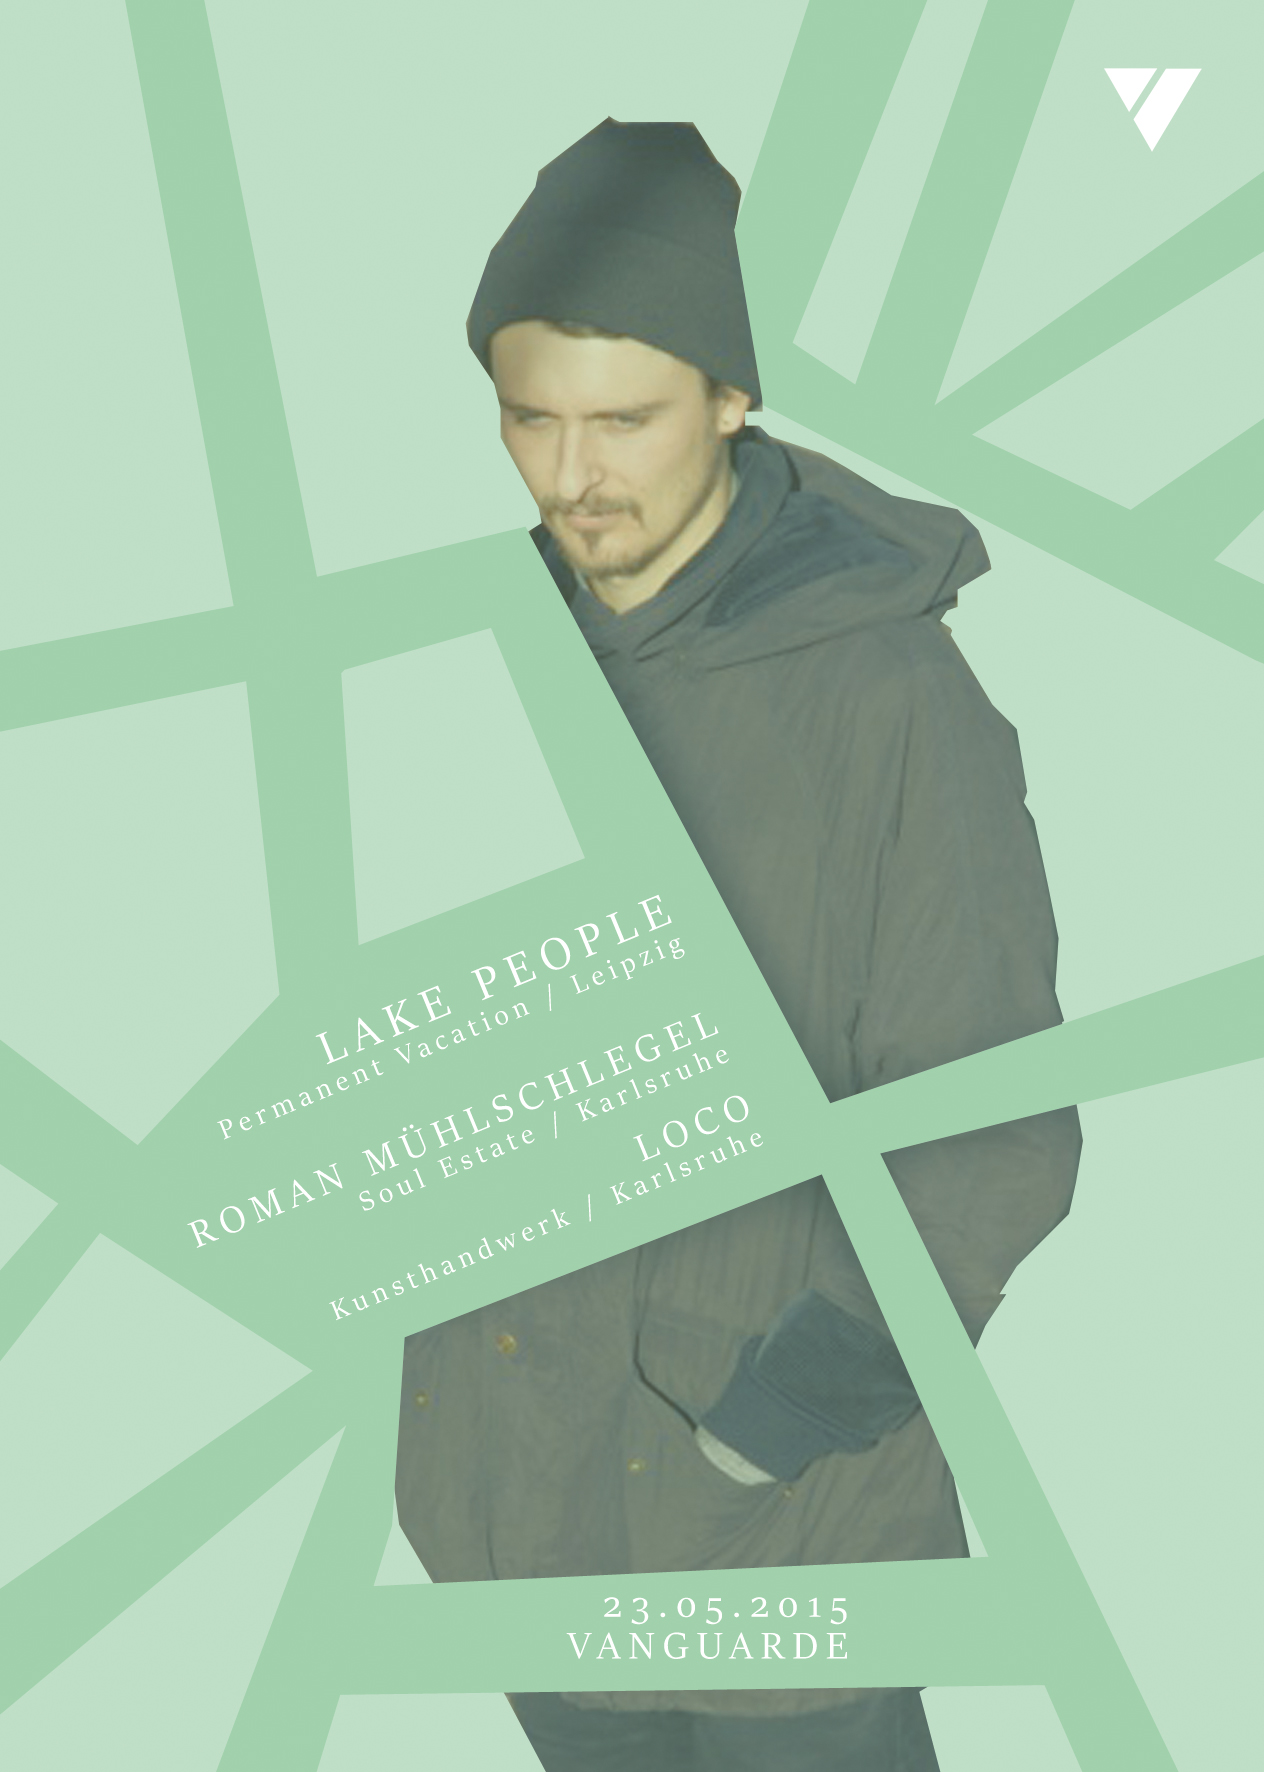 03.04.2015 | LAKE PEOPLE (Permanent Vacation/Leipzig) + LOCO (Kunsthandwerk) + ROMAN MÜHLSCHLEGEL (Soul Estate)